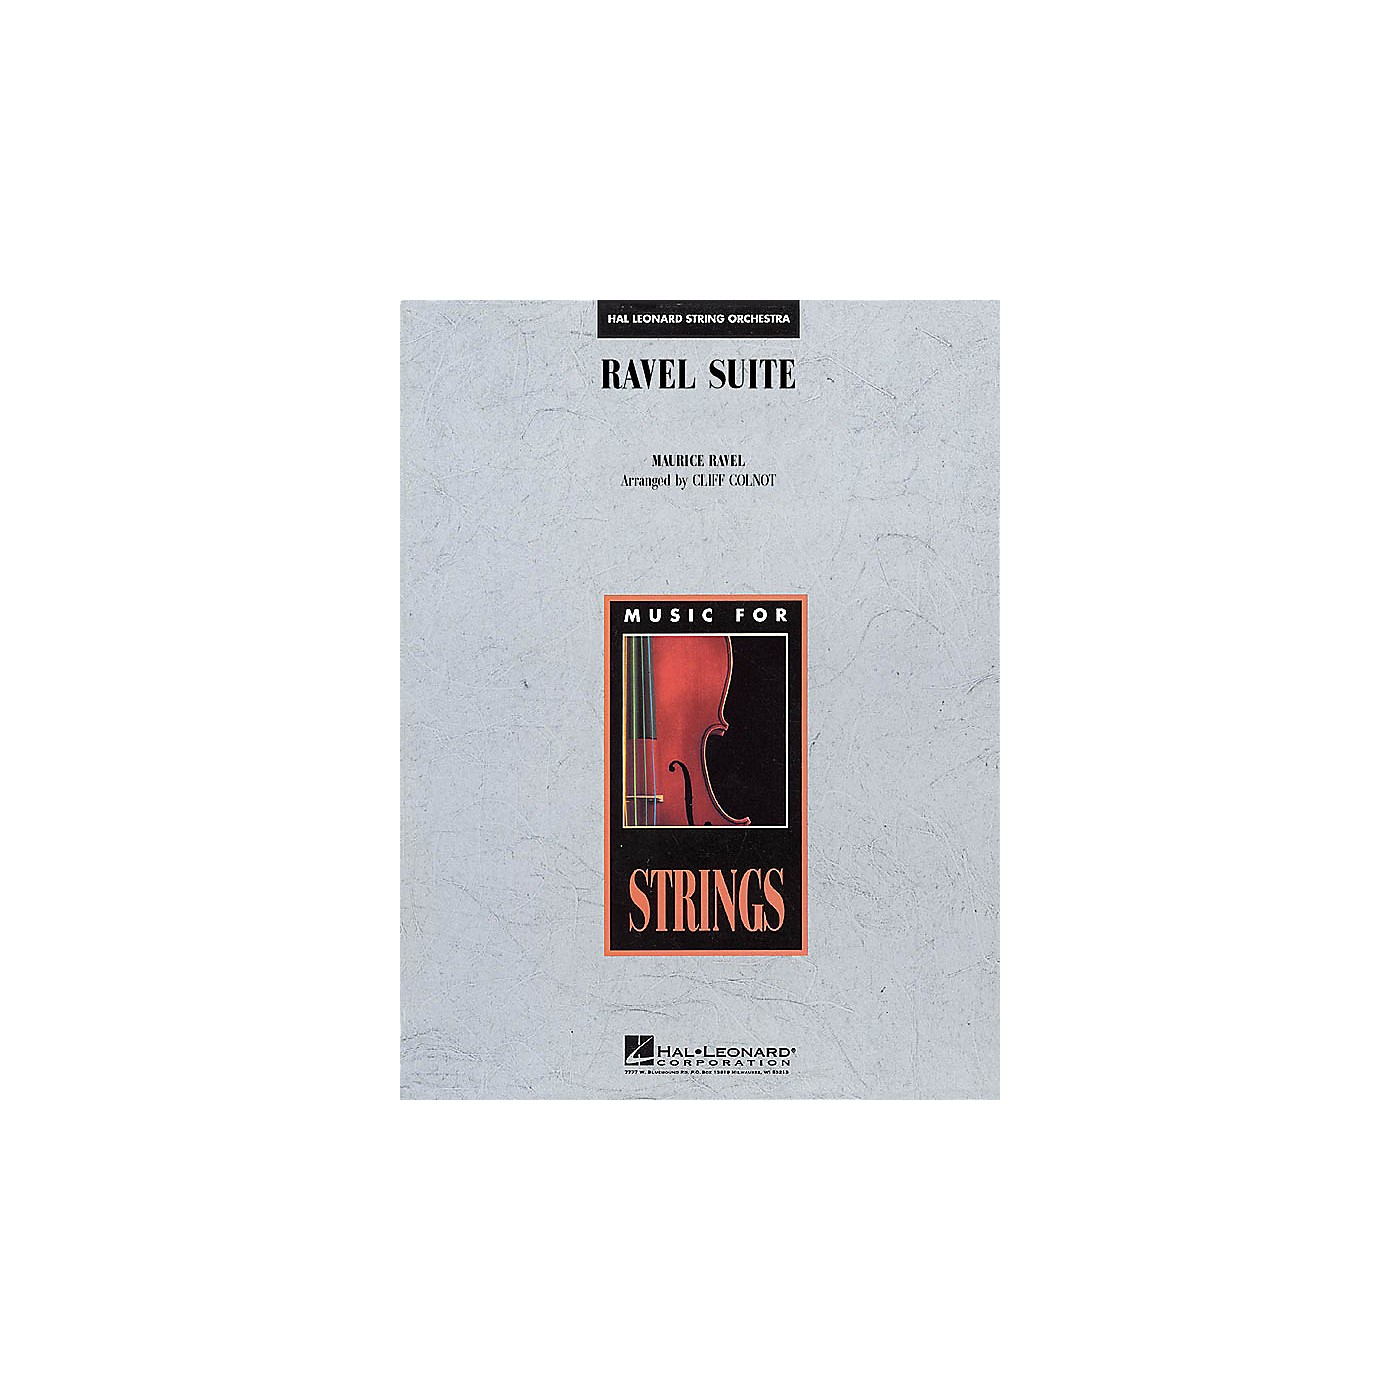 Hal Leonard Ravel Suite for Strings Music for String Orchestra Series Arranged by Cliff Colnot thumbnail